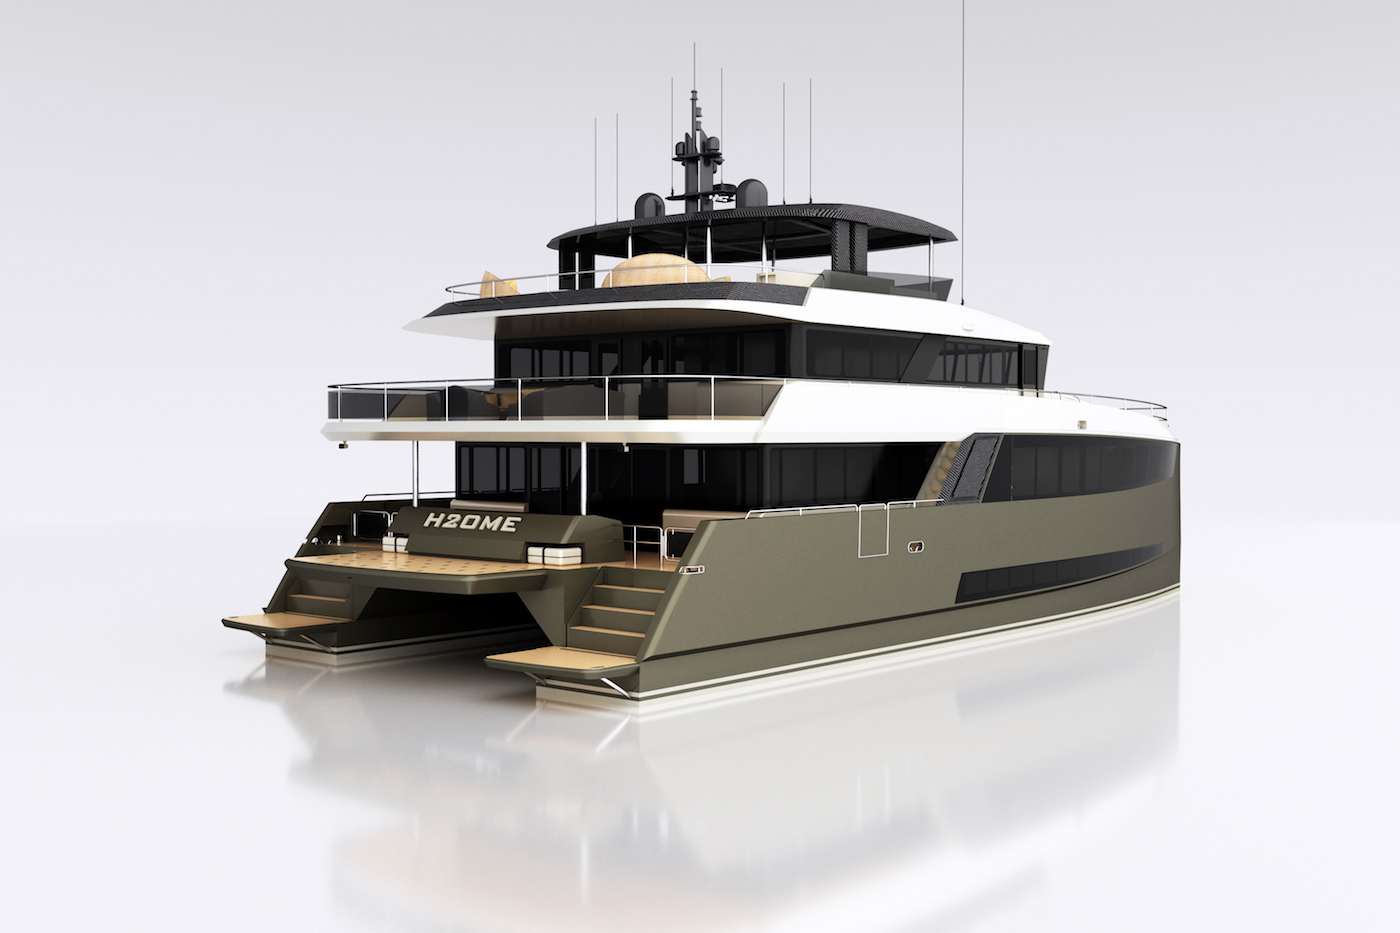 H2OME catamaran yacht by Amasea Yachts - exterior